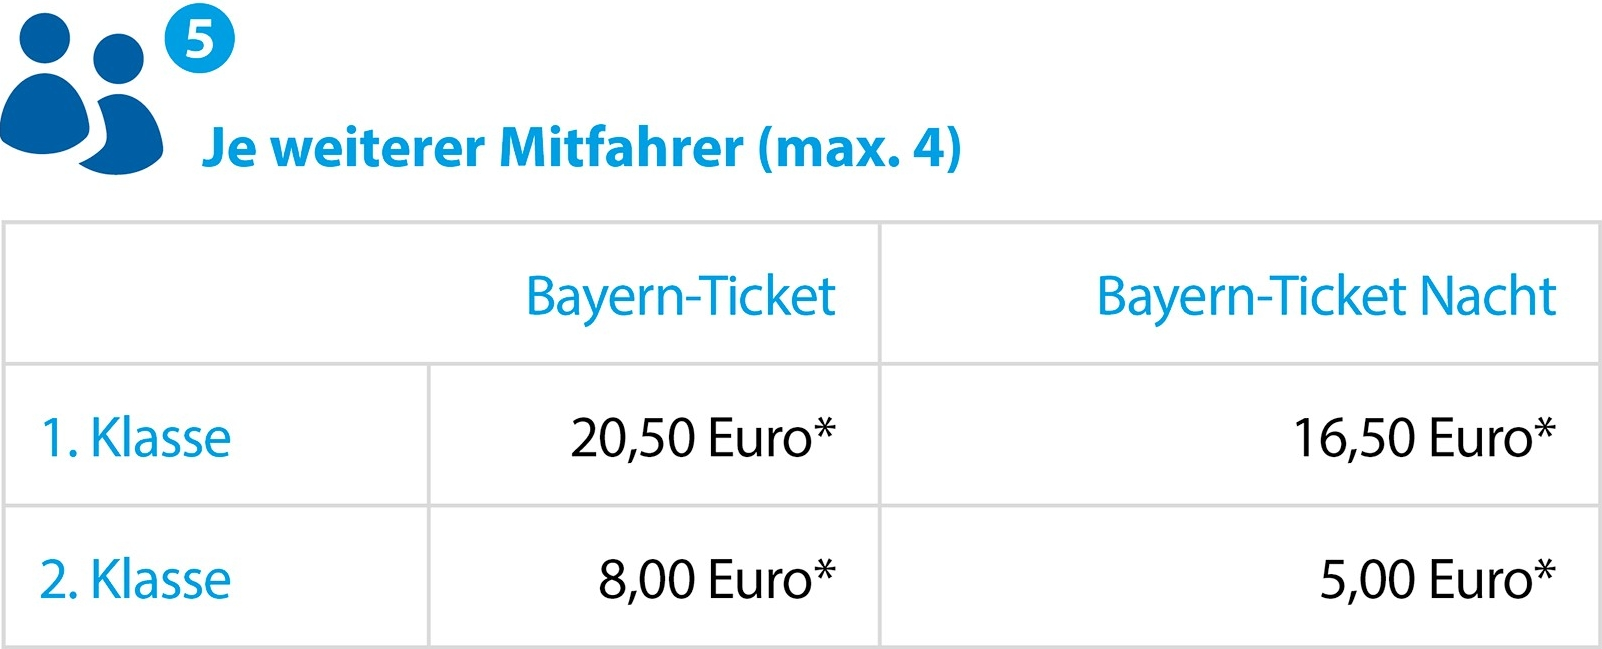 bayern ticket single